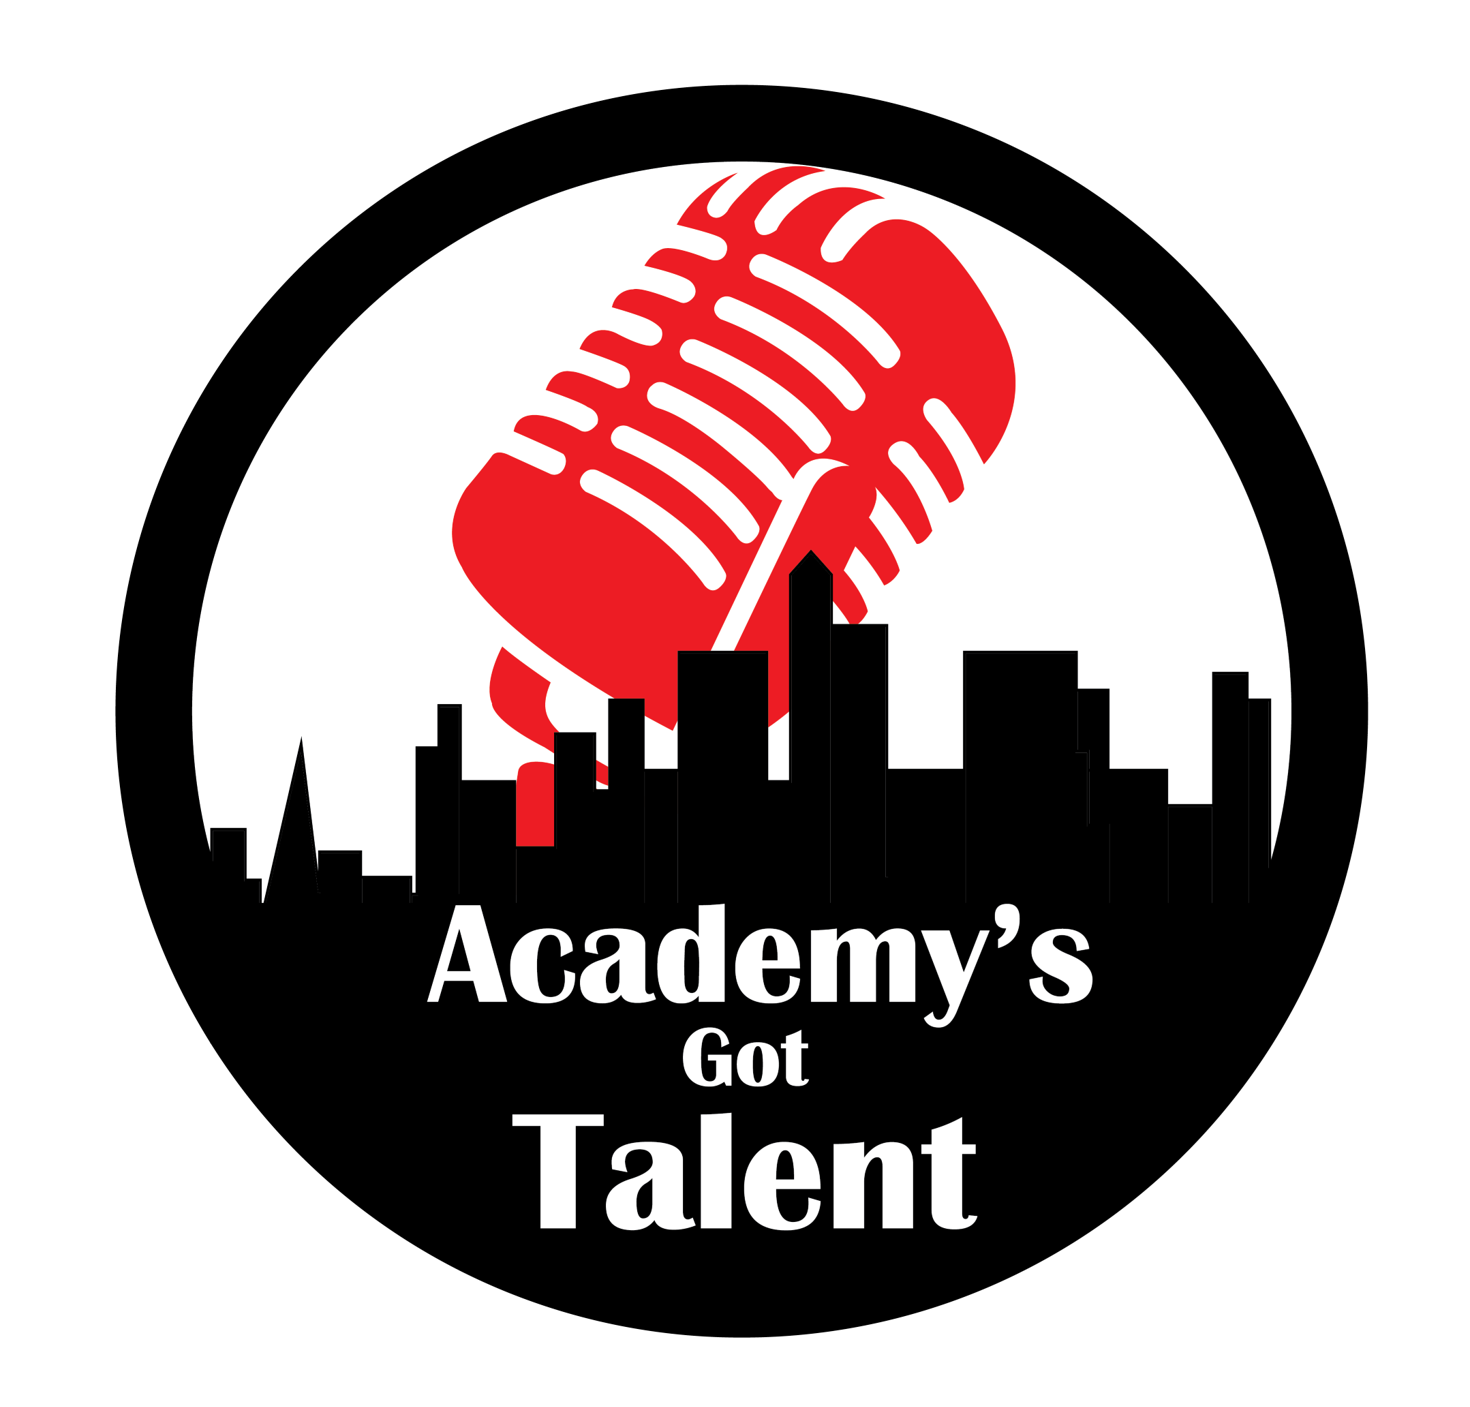 Academy's Got Talent